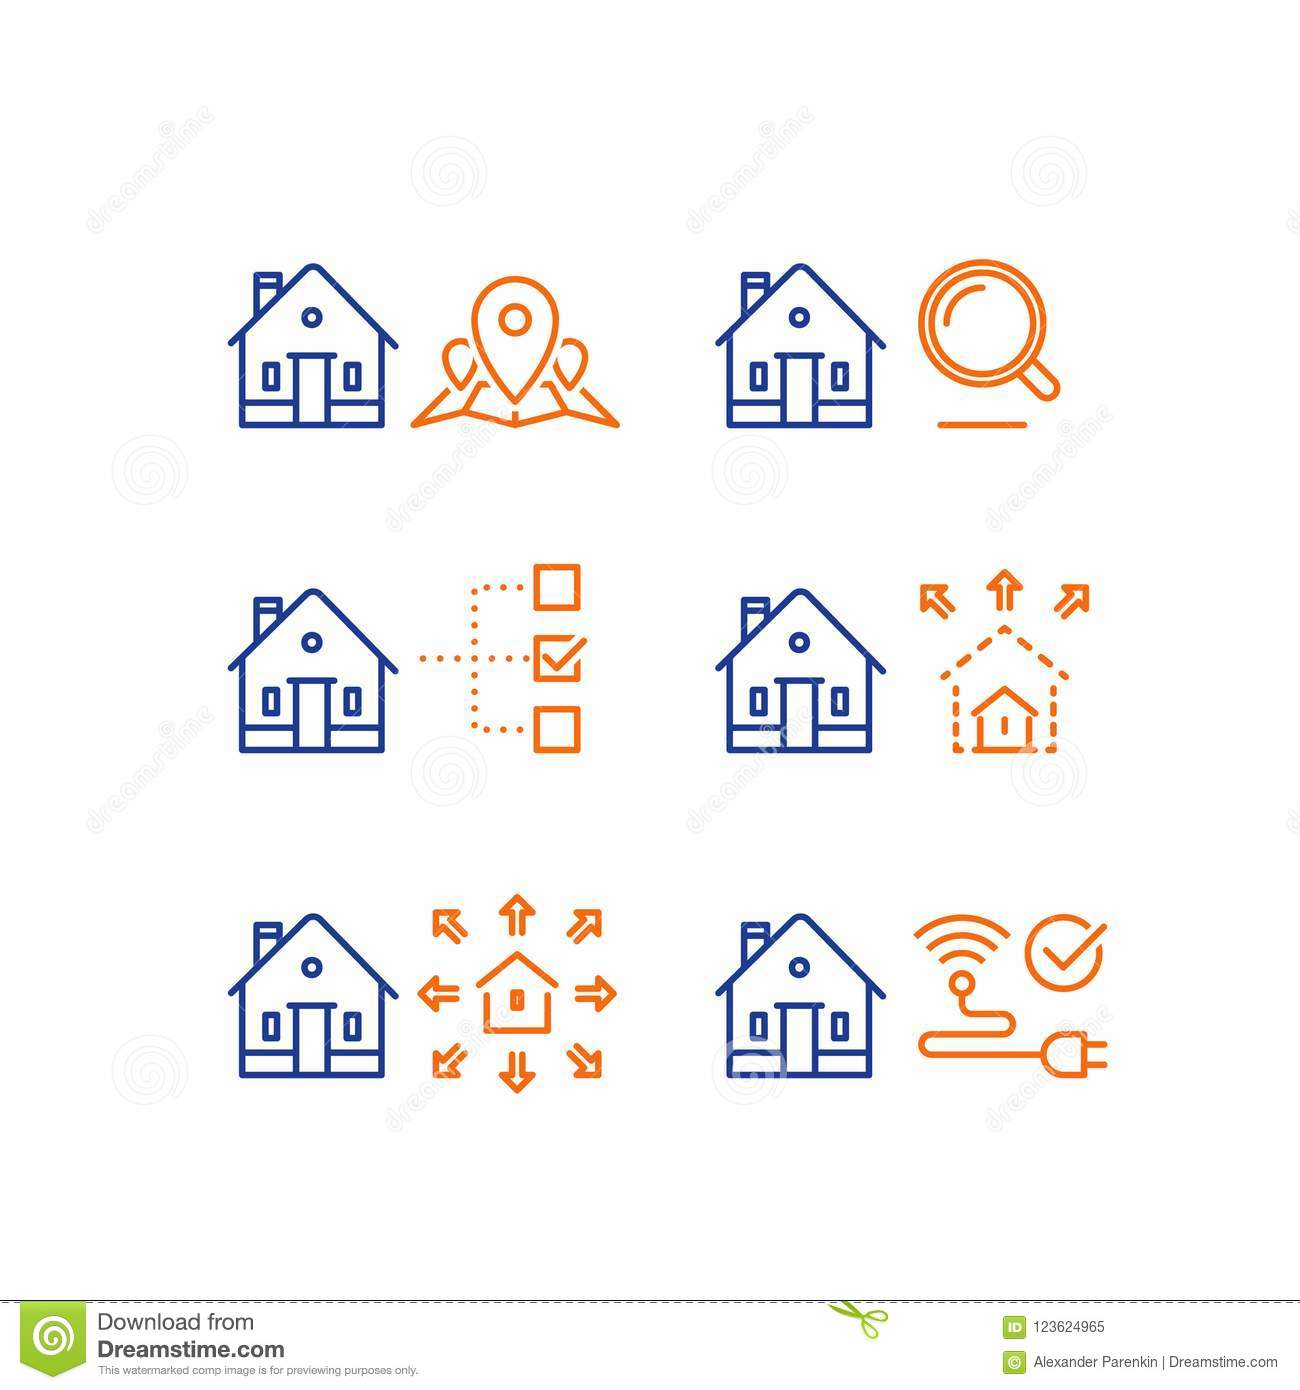 ... Location Mark Map, Search Criteria Magnifying Glass, Residential  Building Size Parameter, Remodel, Smart Home Control, Wireless Internet  Connection, ...